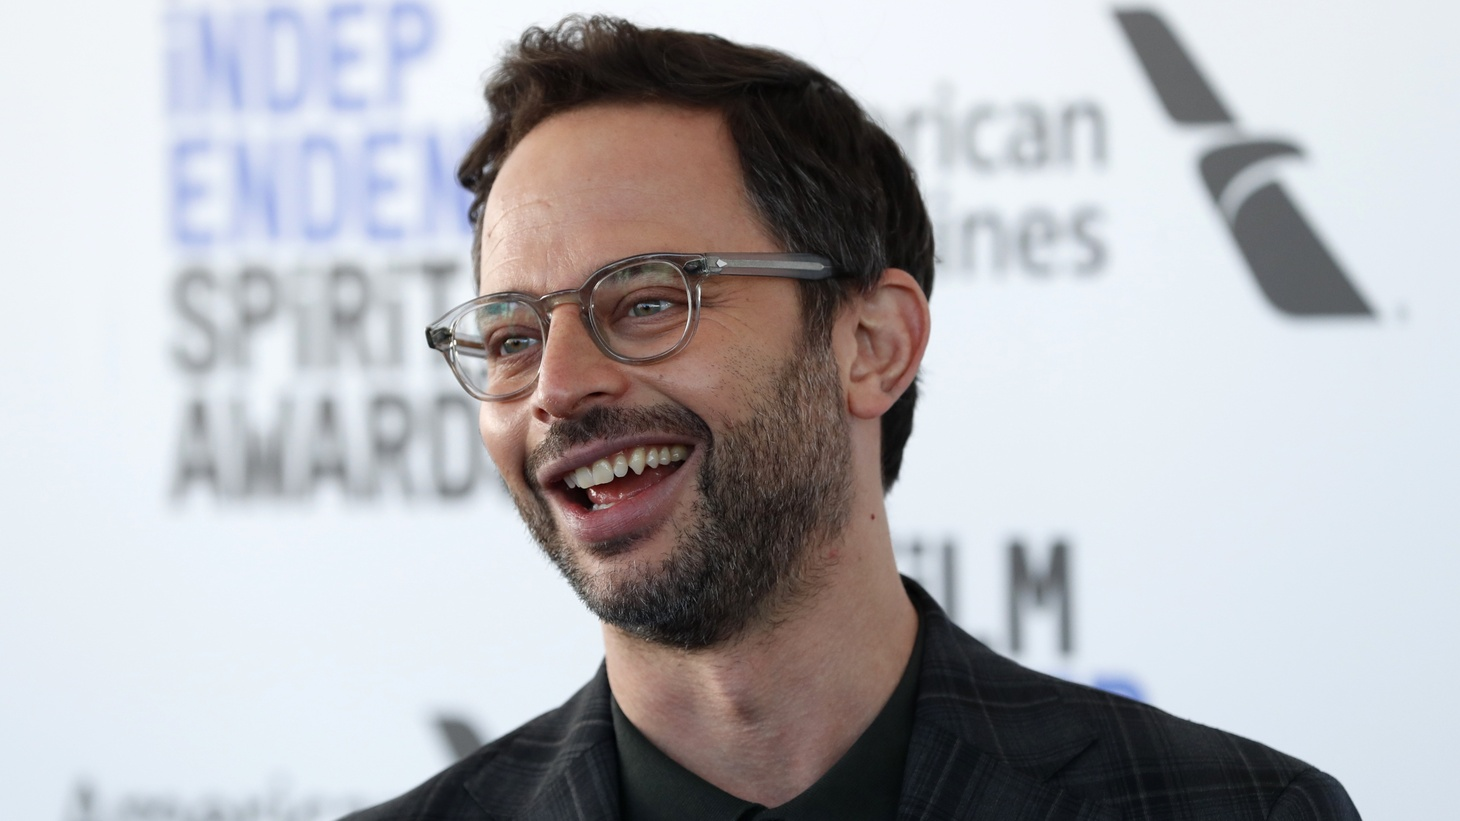 Nick Kroll at the 35th Film Independent Spirit Awards in Santa Monica, California, U.S., February 8, 2020.